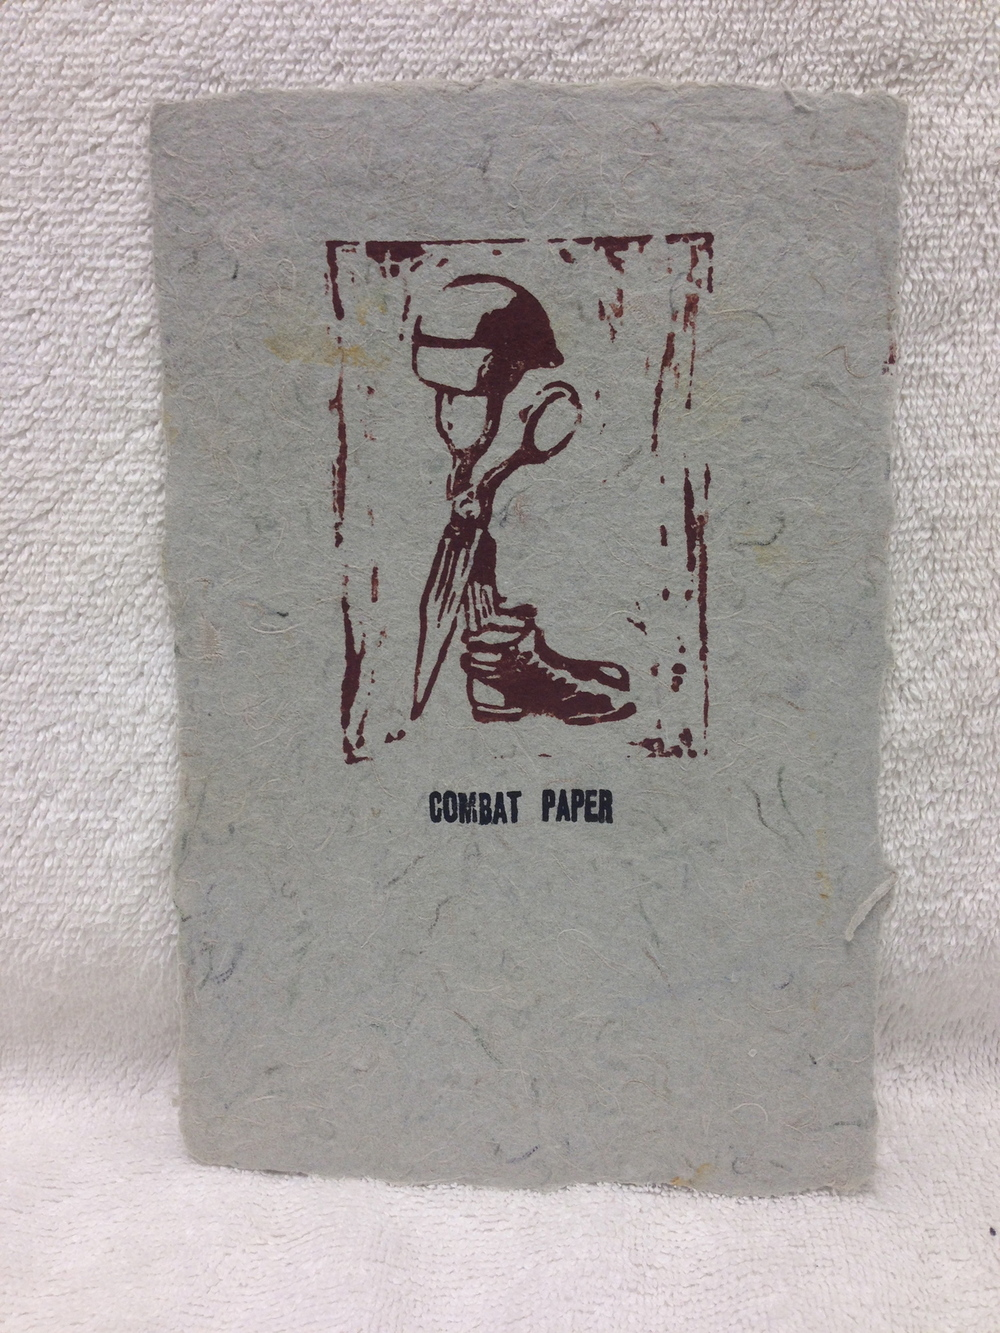 David Keefe Marines - Iraq _CPNJ Logo_ 2011 Lino-cut on Handmade Paper from military uniforms 8 x 5 PCNJ IMG_0952.jpg